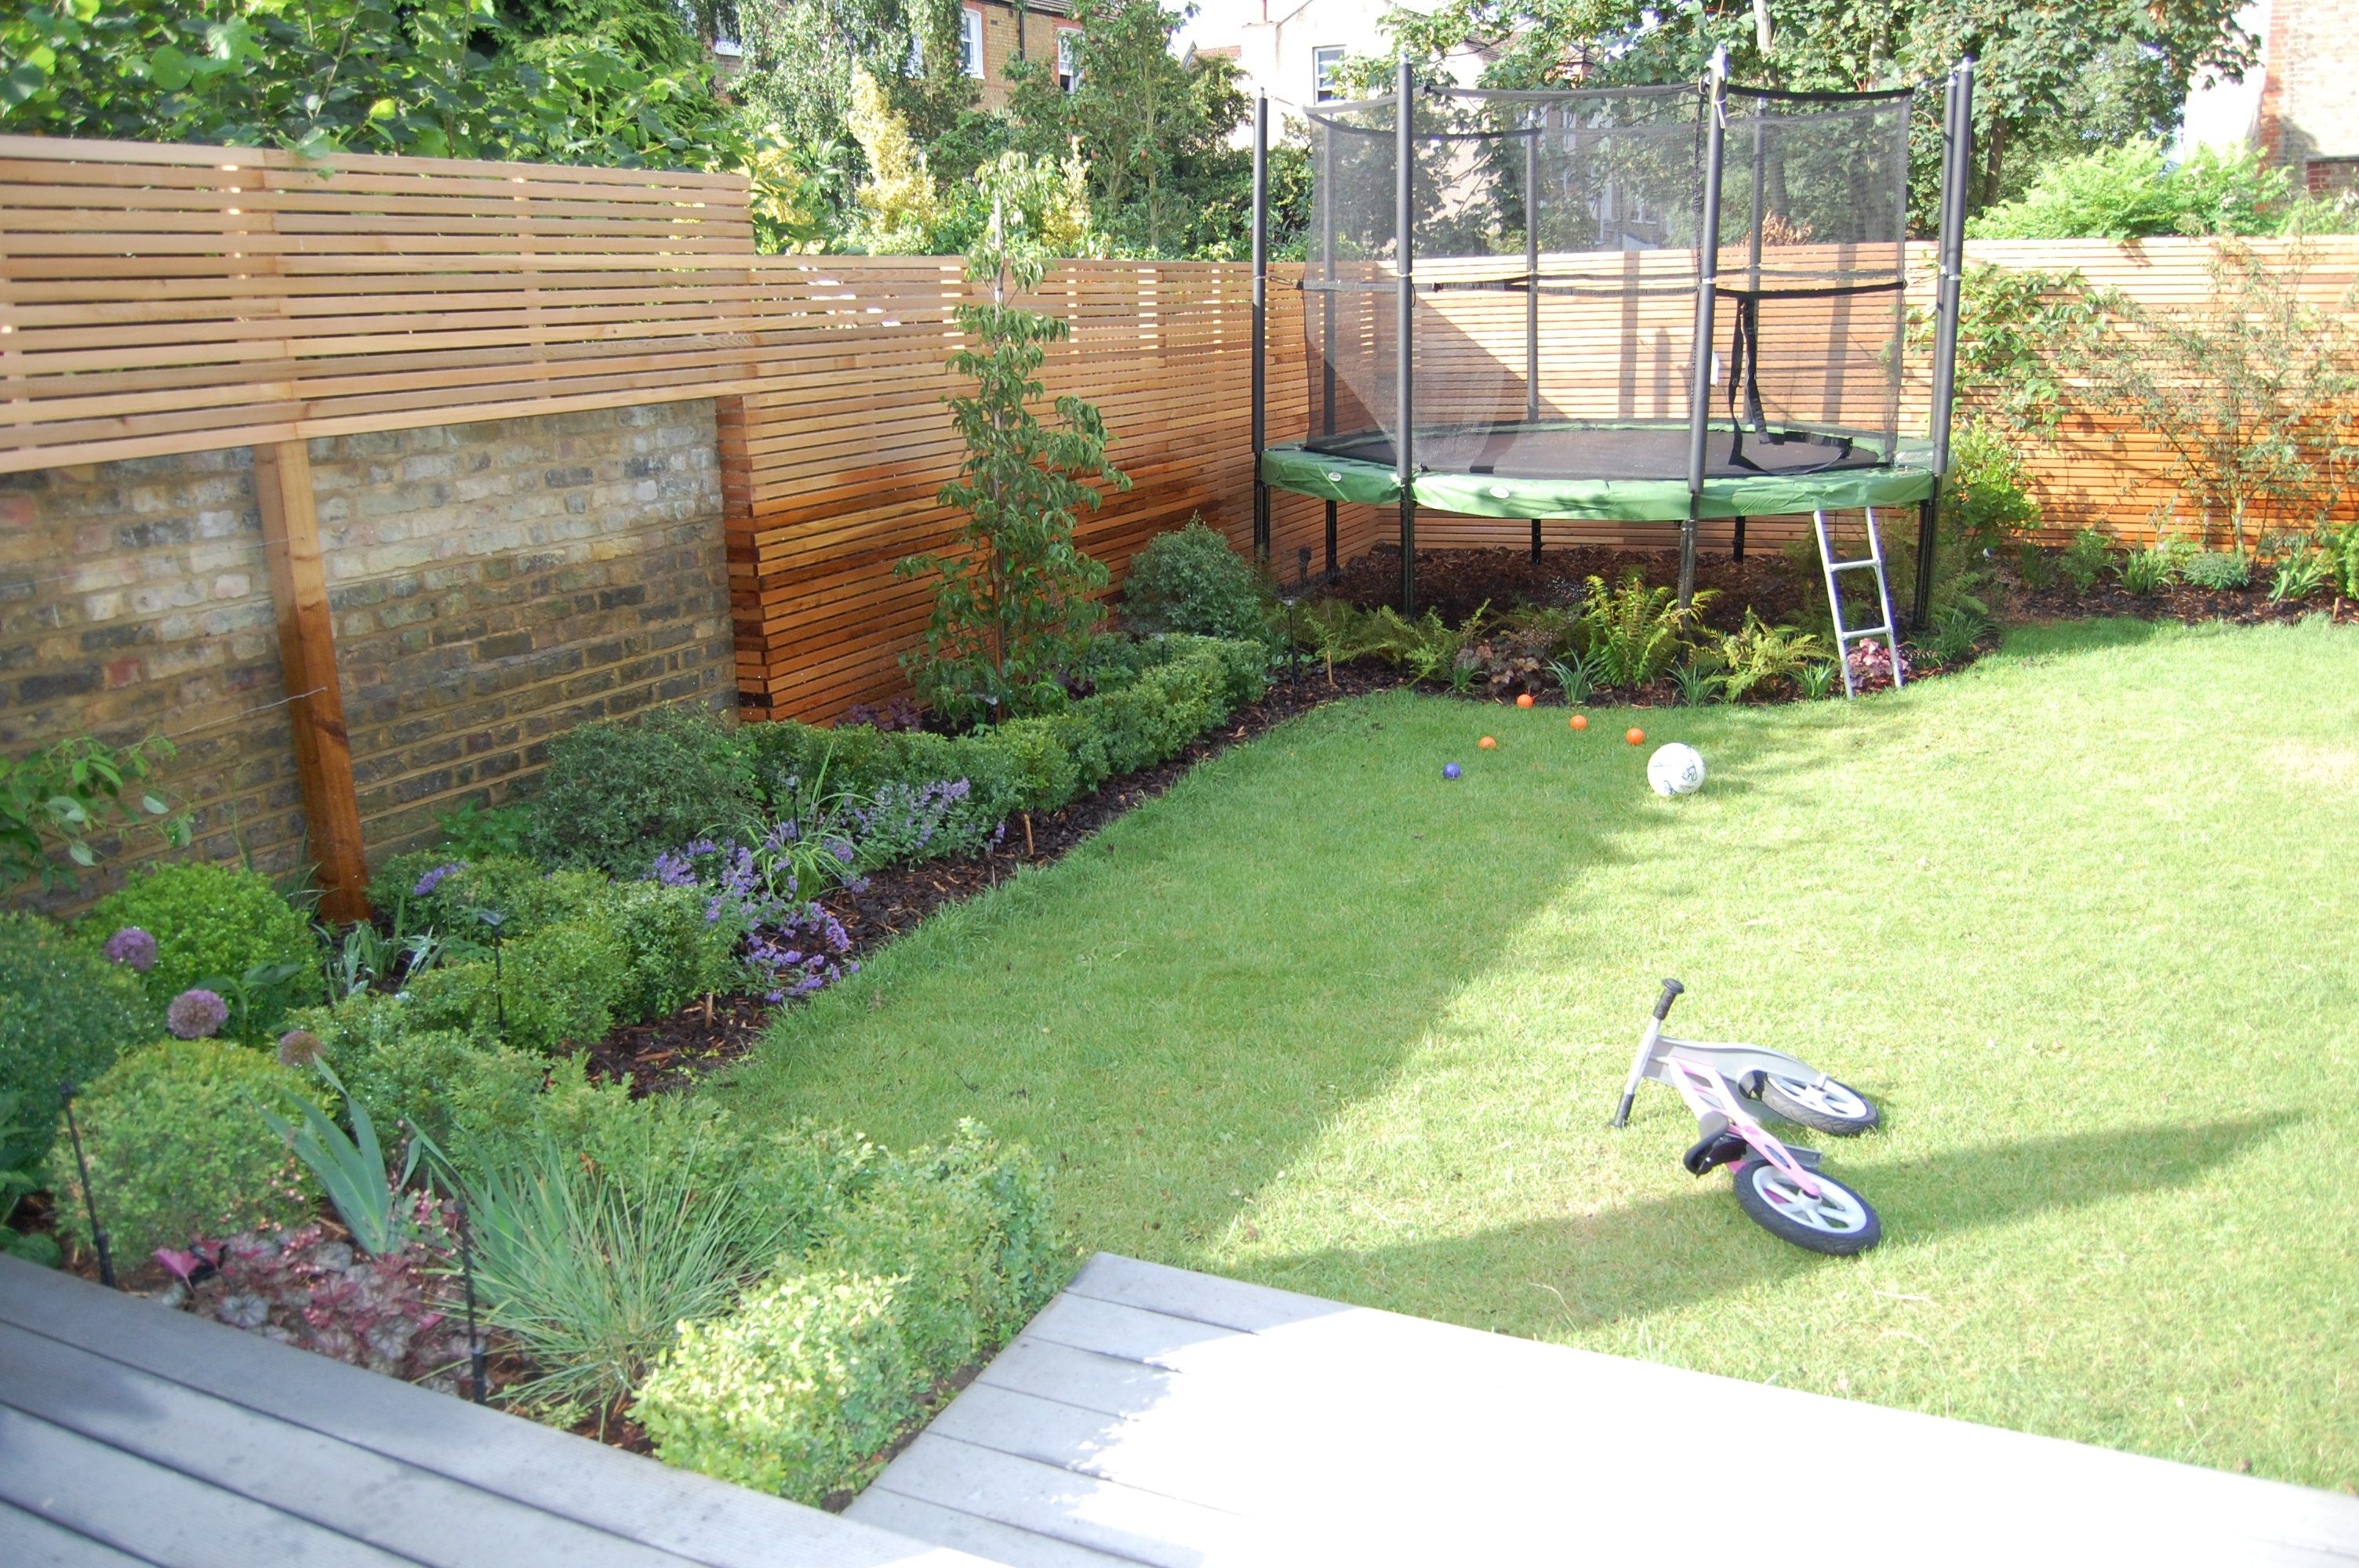 Garden Design Corner shelley hugh-jones garden design: trampoline position integrated